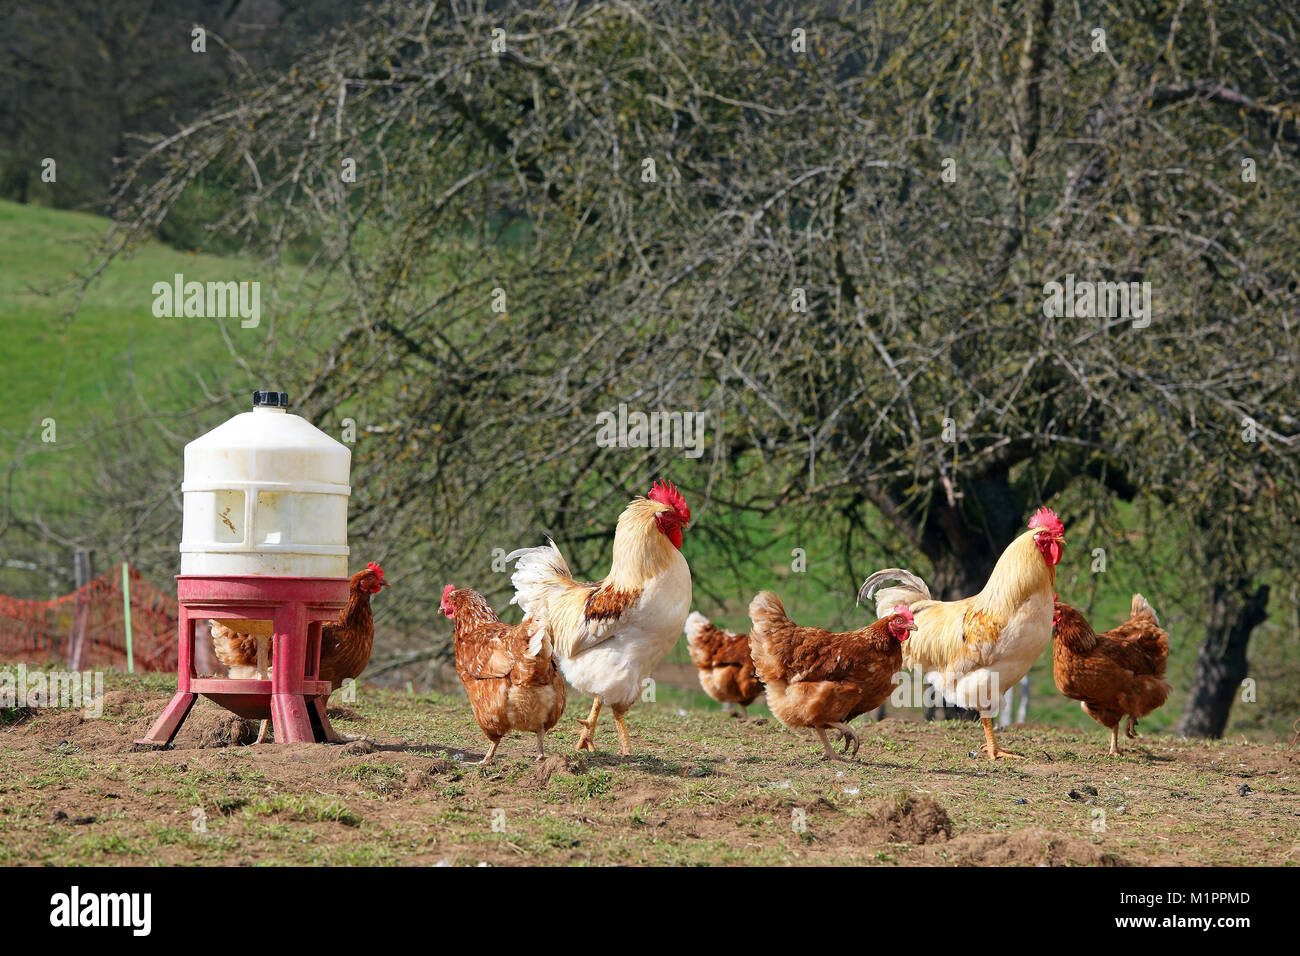 Chickens in free-range farming with discharge in a meadow